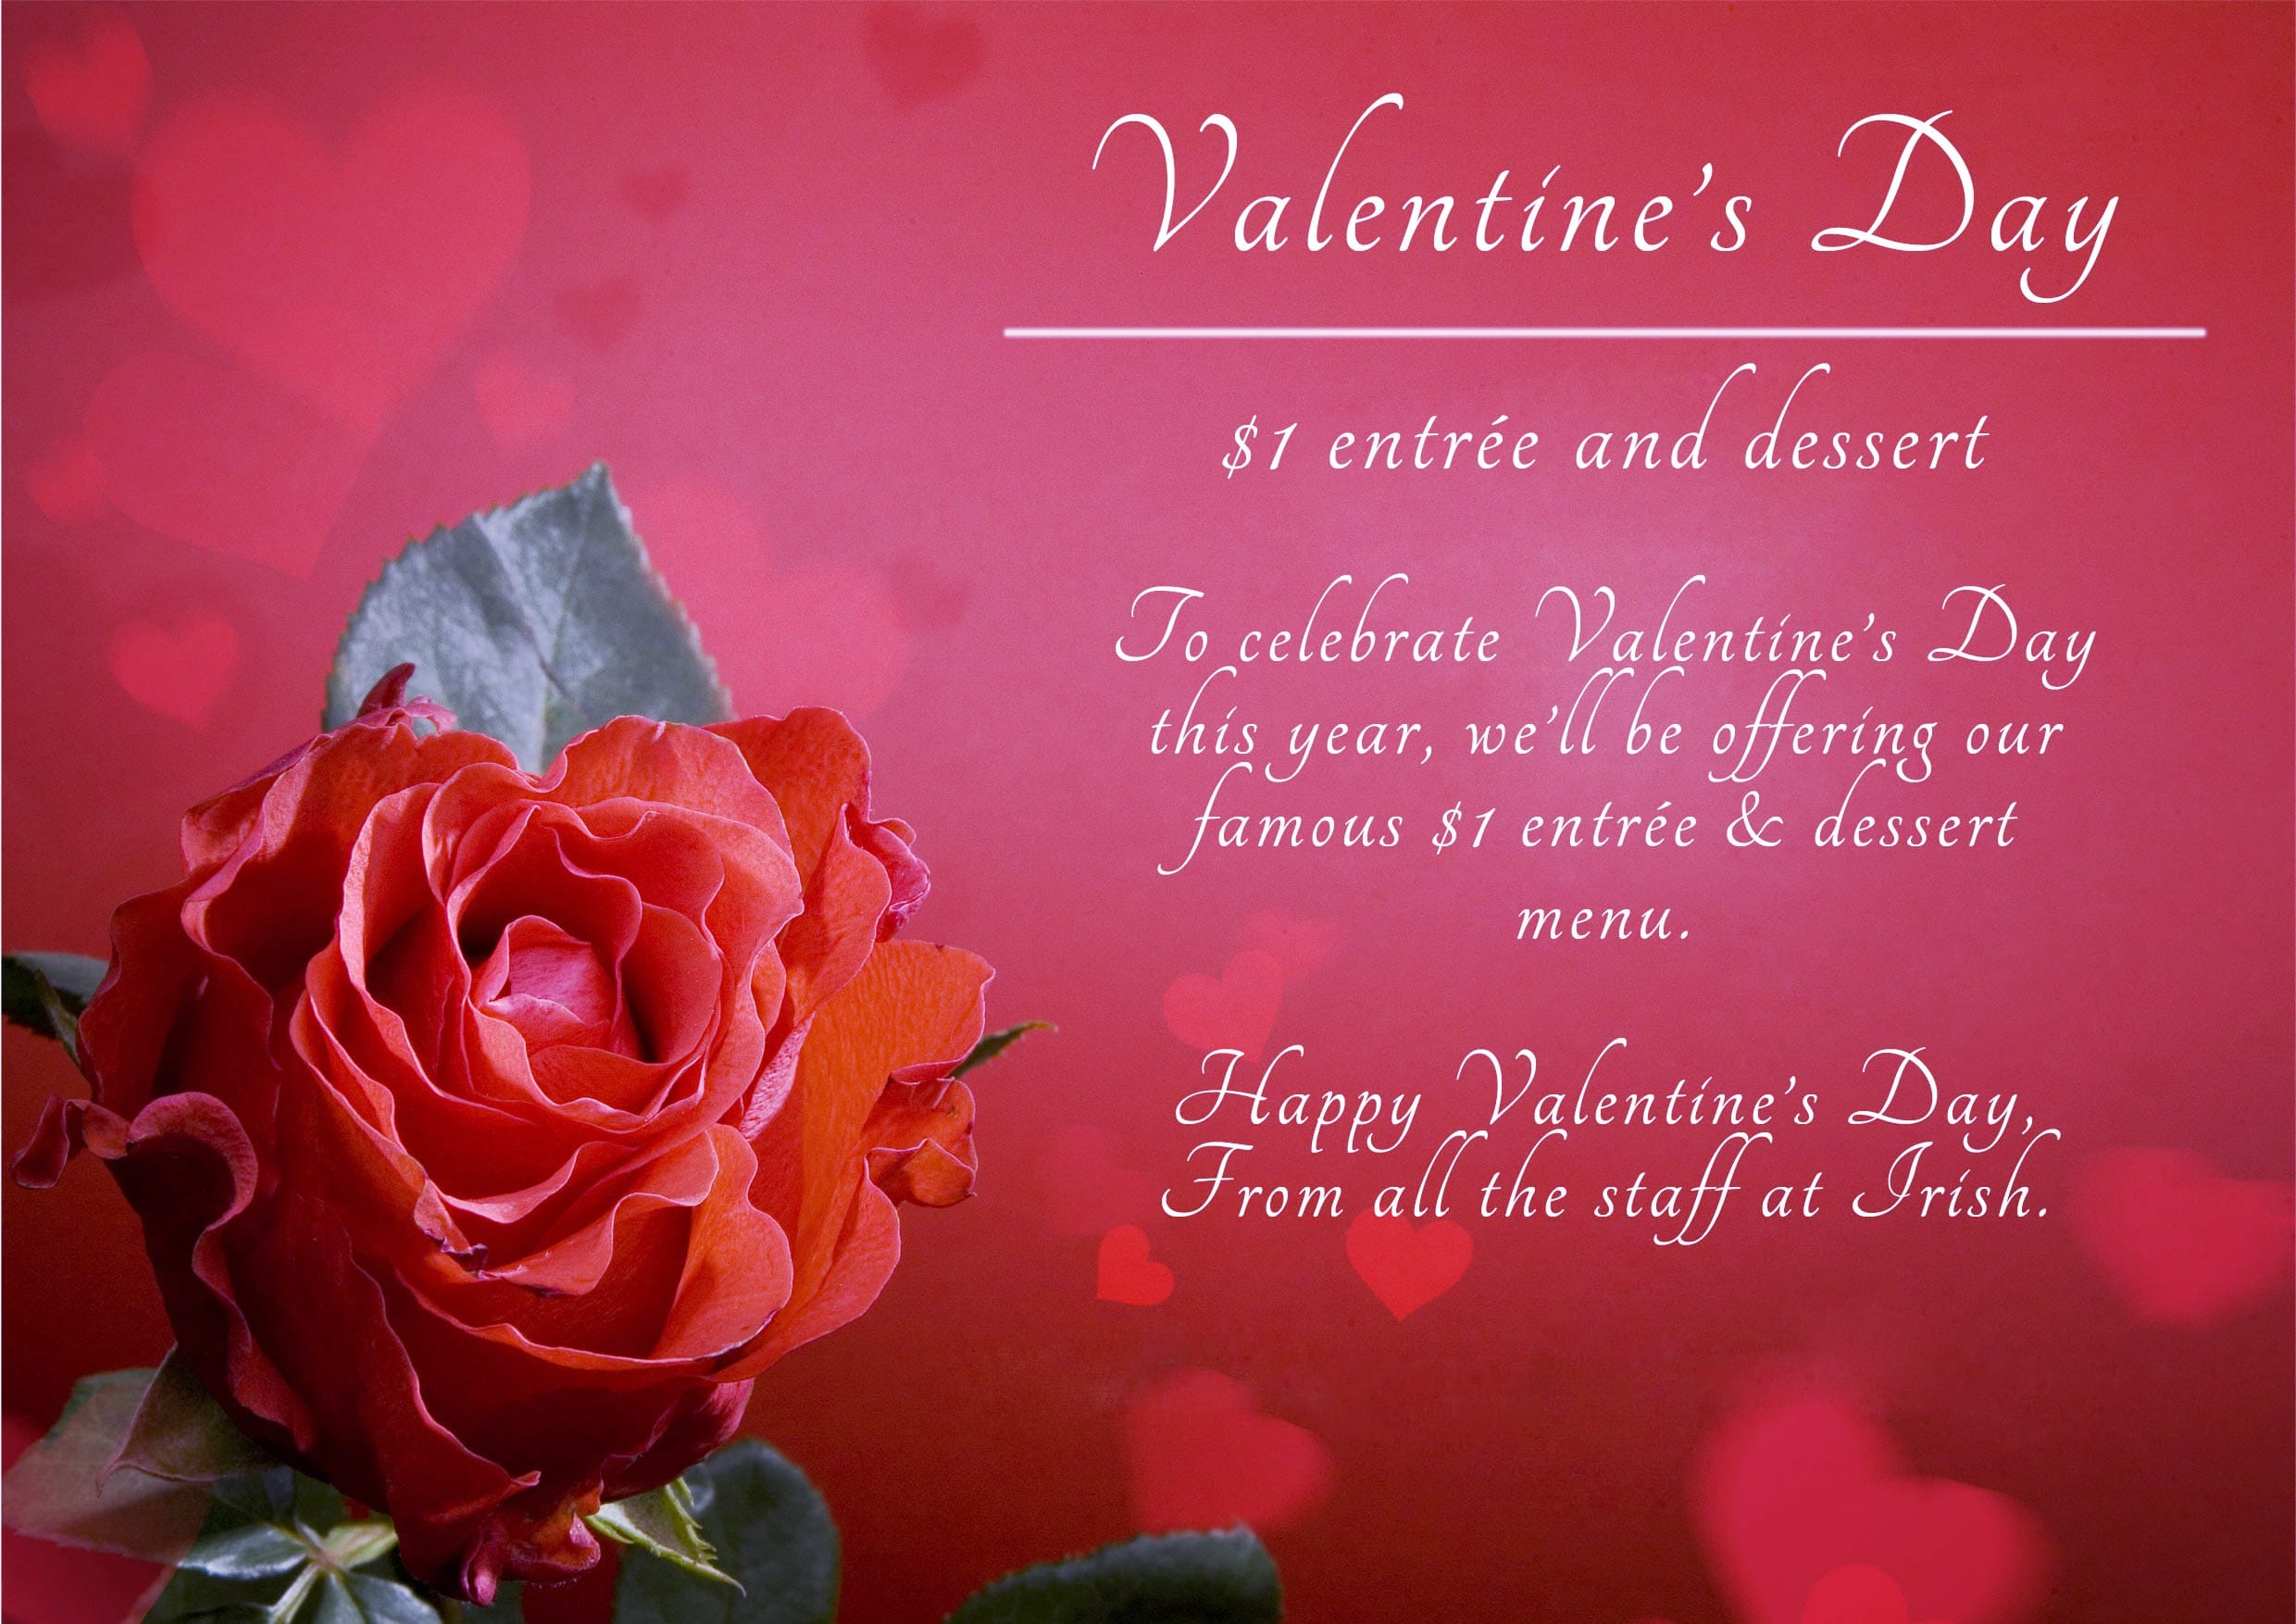 Valentien's day HD images and photos